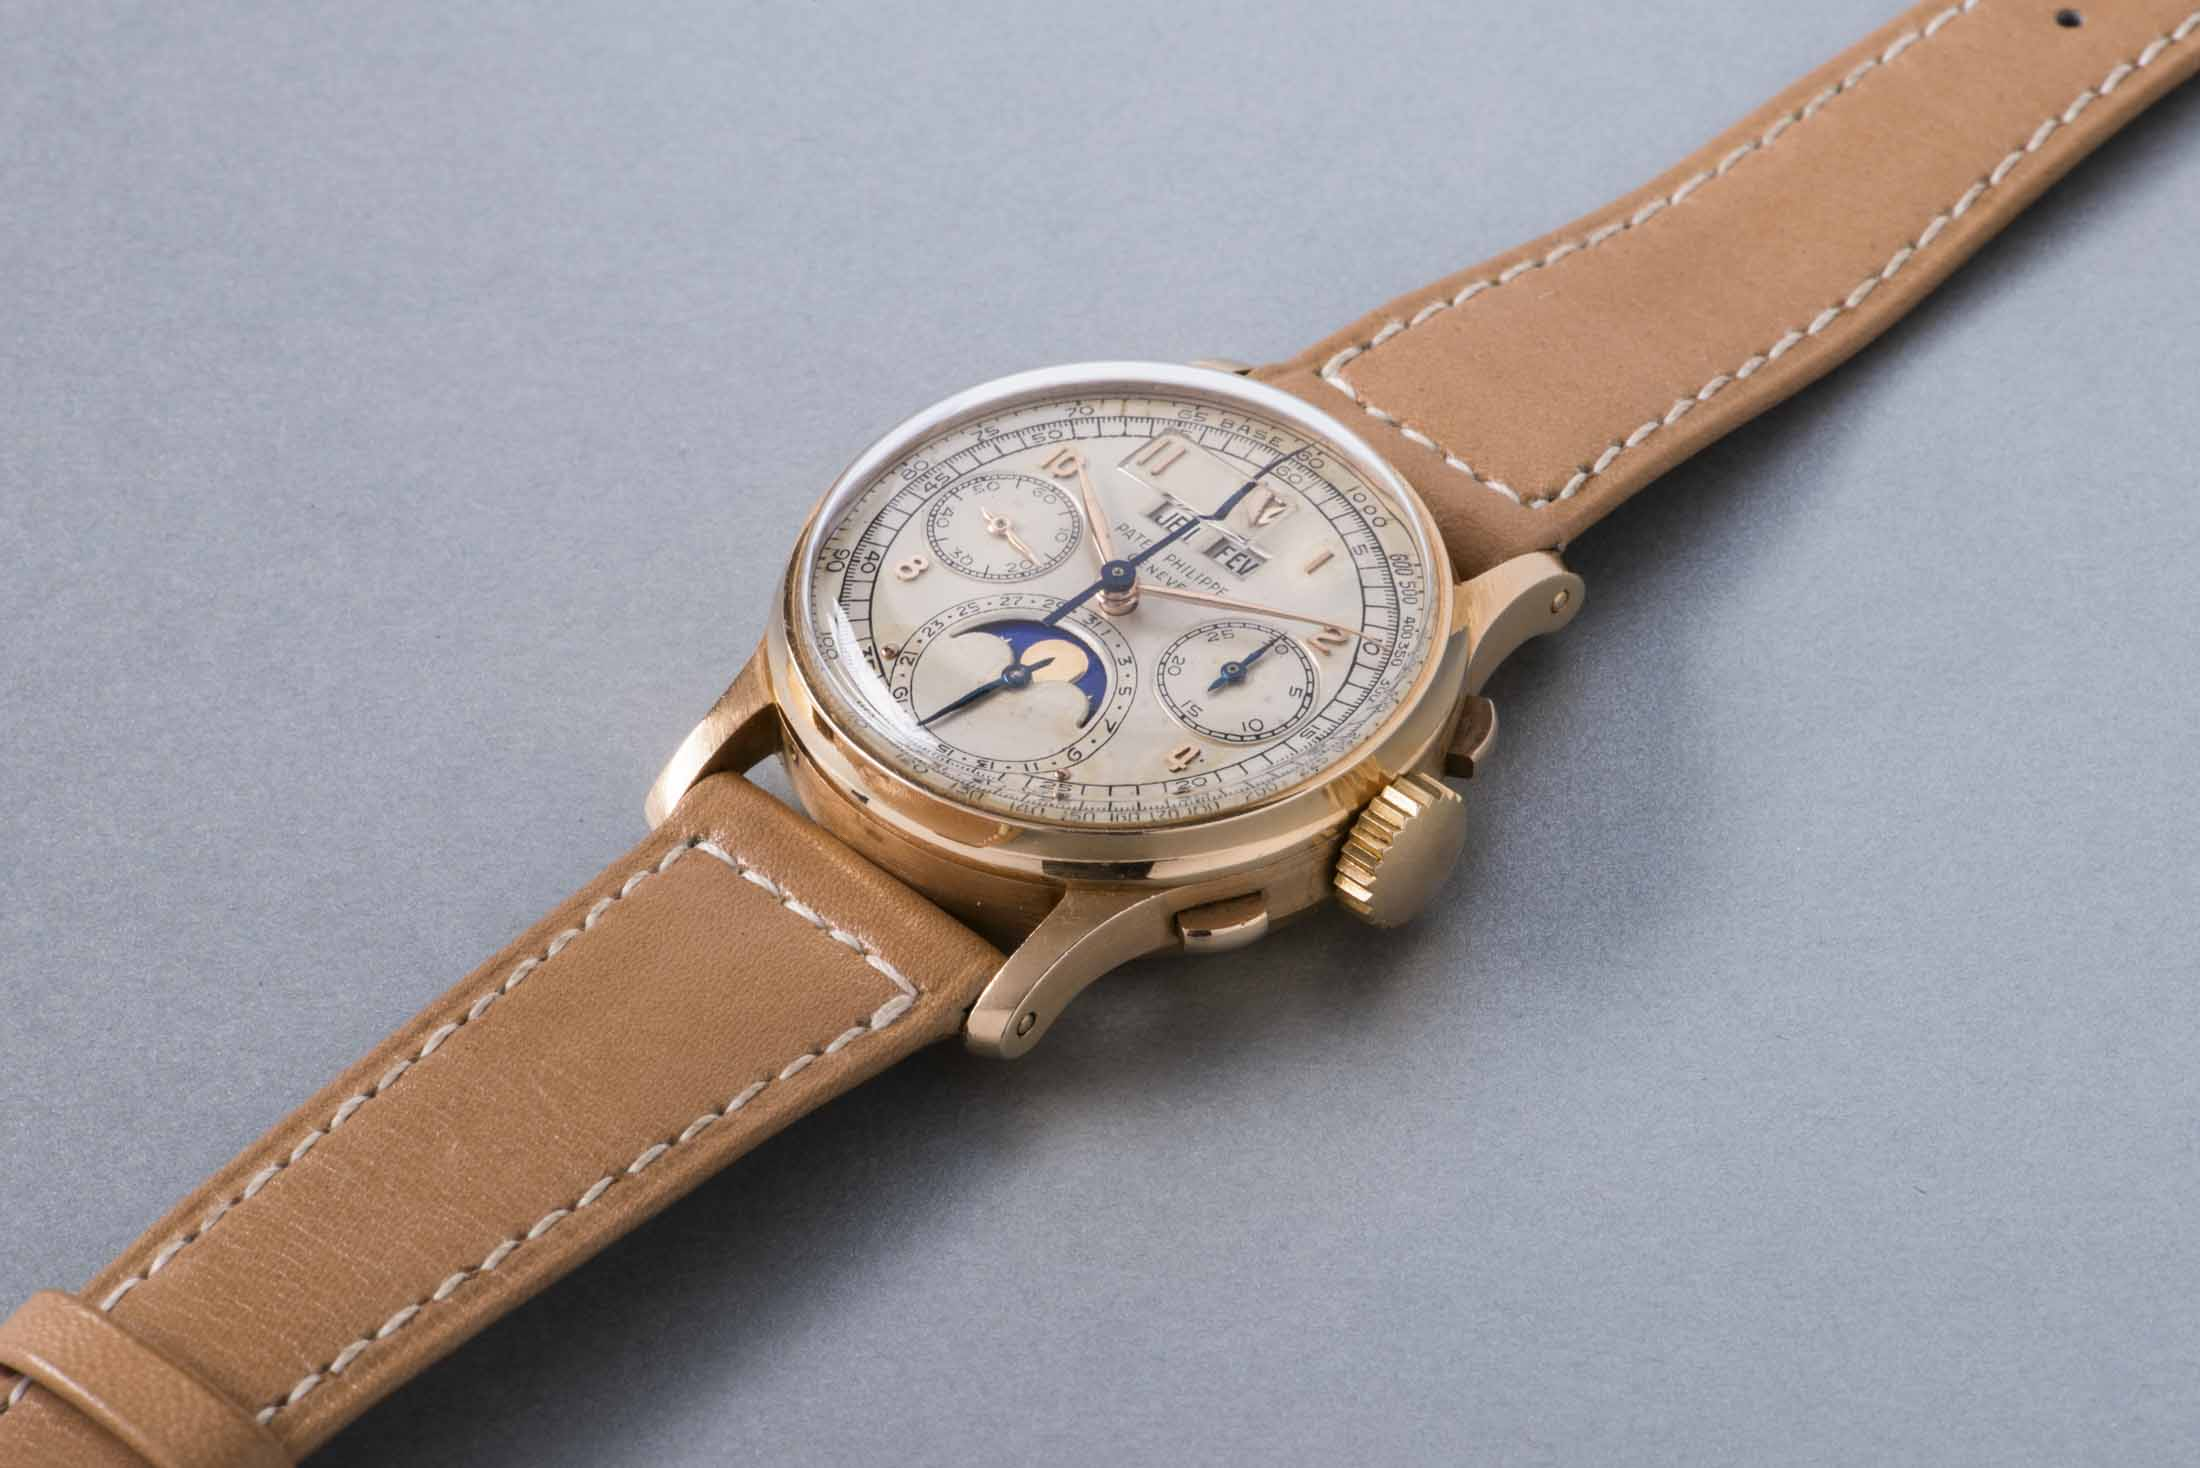 Patek Philippe Pink Gold Perpetual Calendar Chronograph Wristwatch With Moonphases and Tachymeter Scale